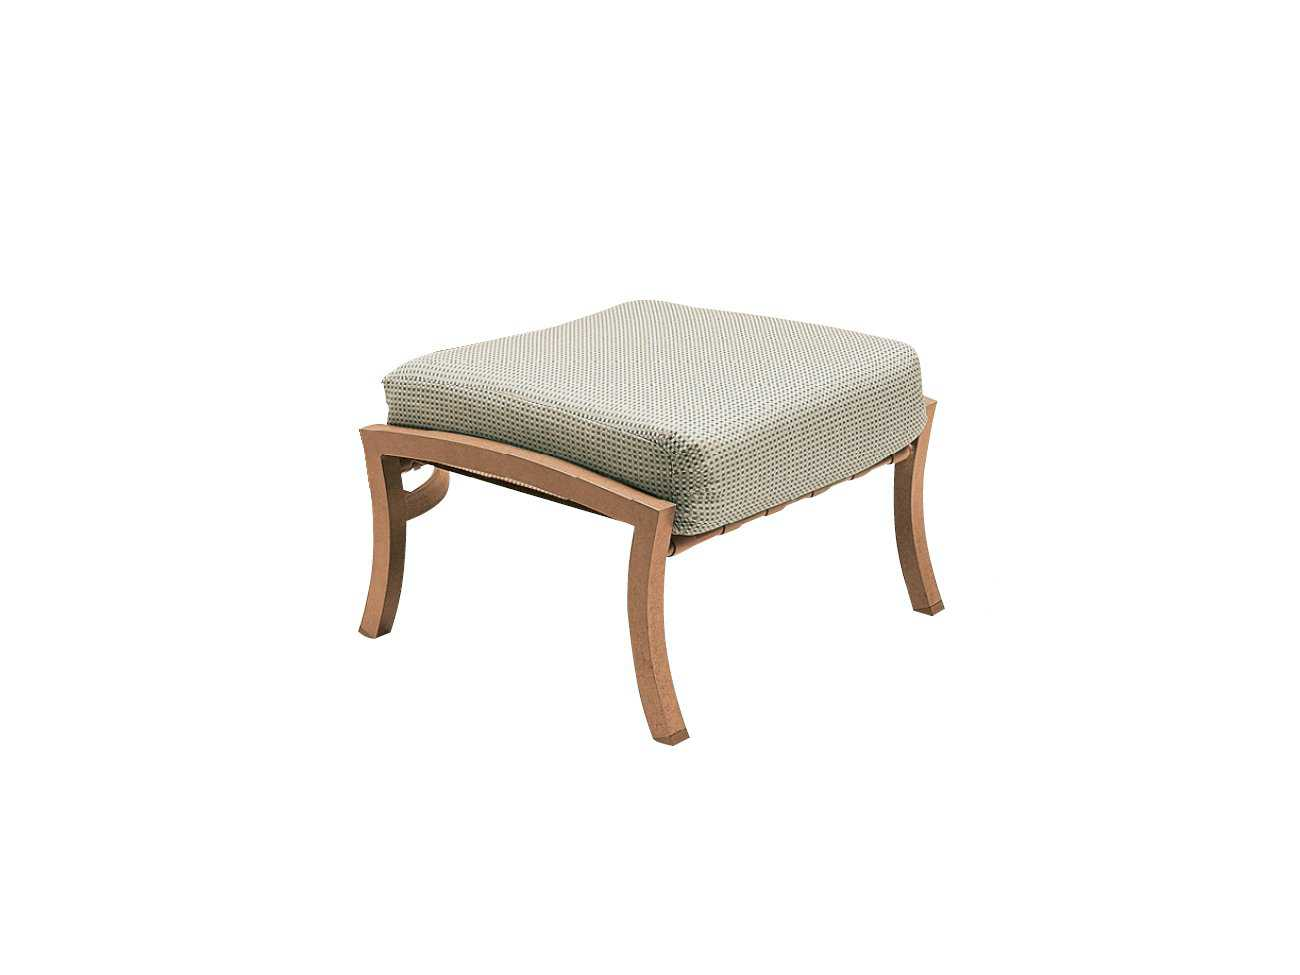 Woodard carson ottoman replacement cushions wr5p0486ch for Carson chaise lounge